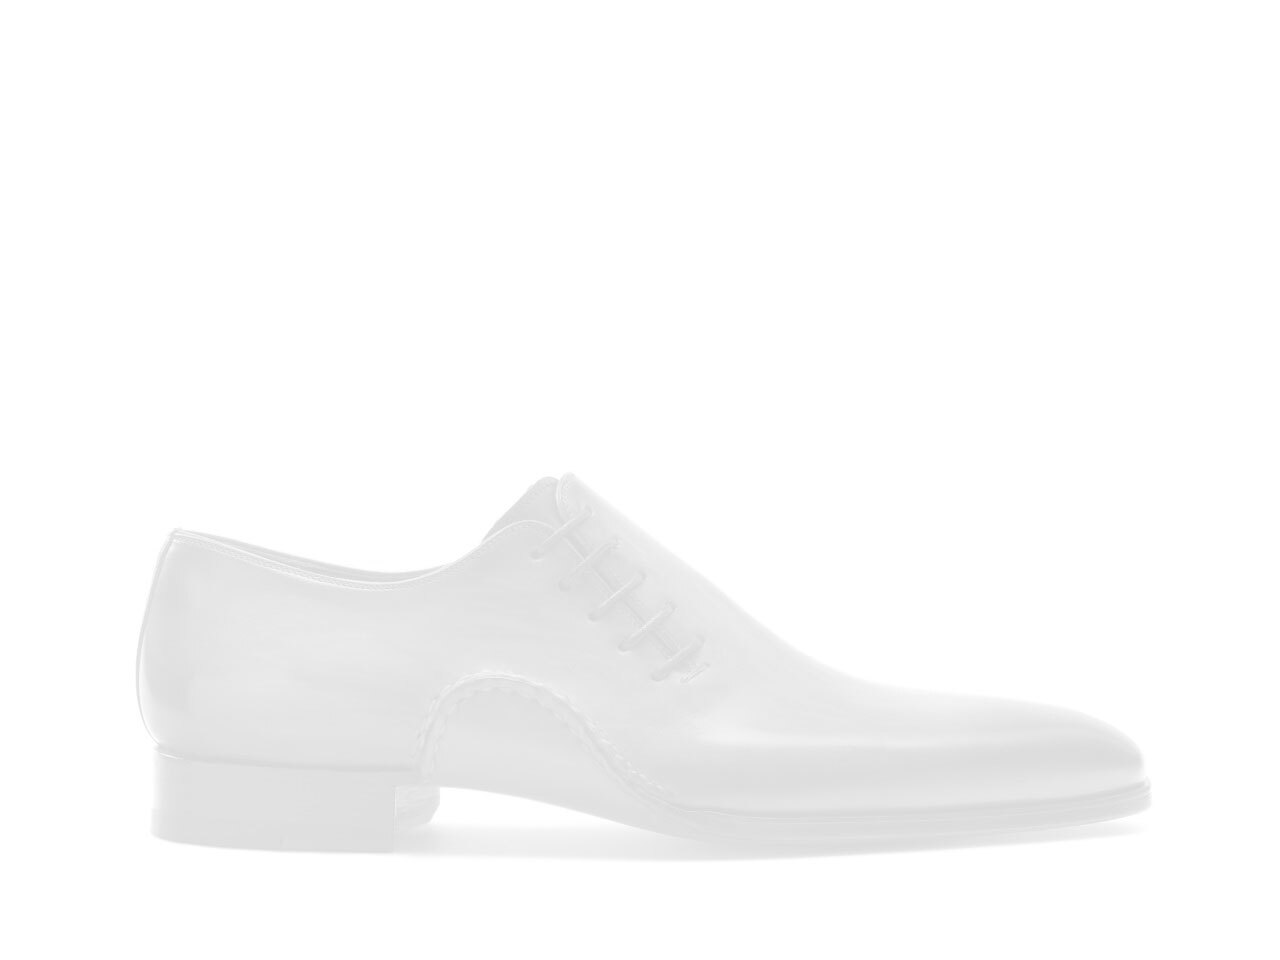 Sole of the Magnanni Arnoia White and Cuero Men's Sneakers